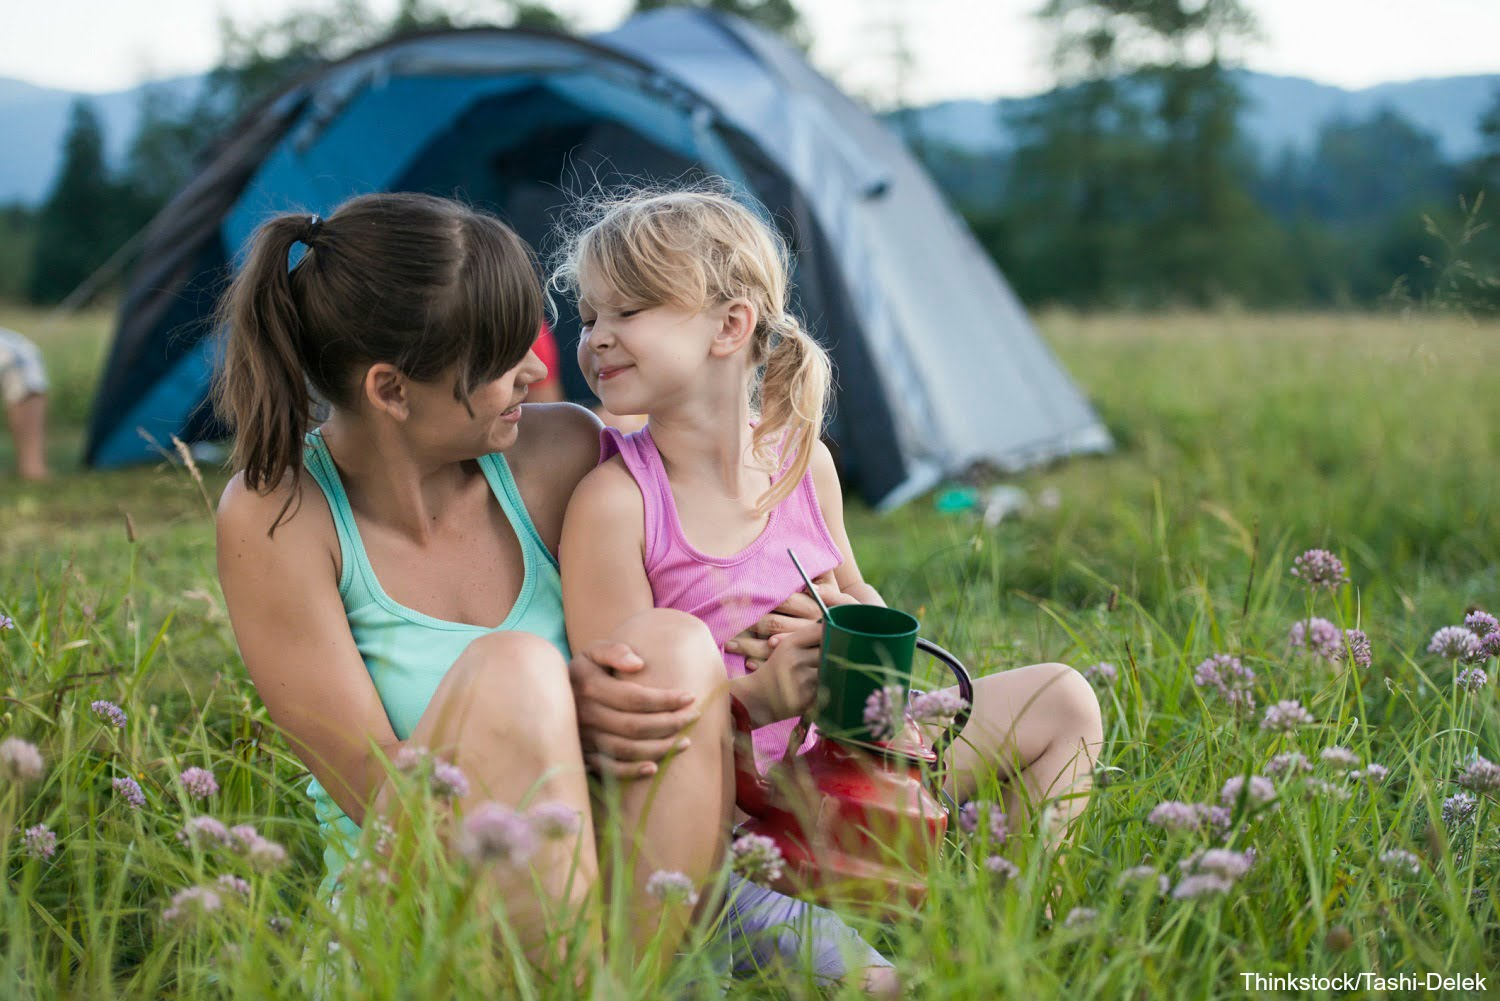 What You Need To Know About Bushkill Falls Camping The